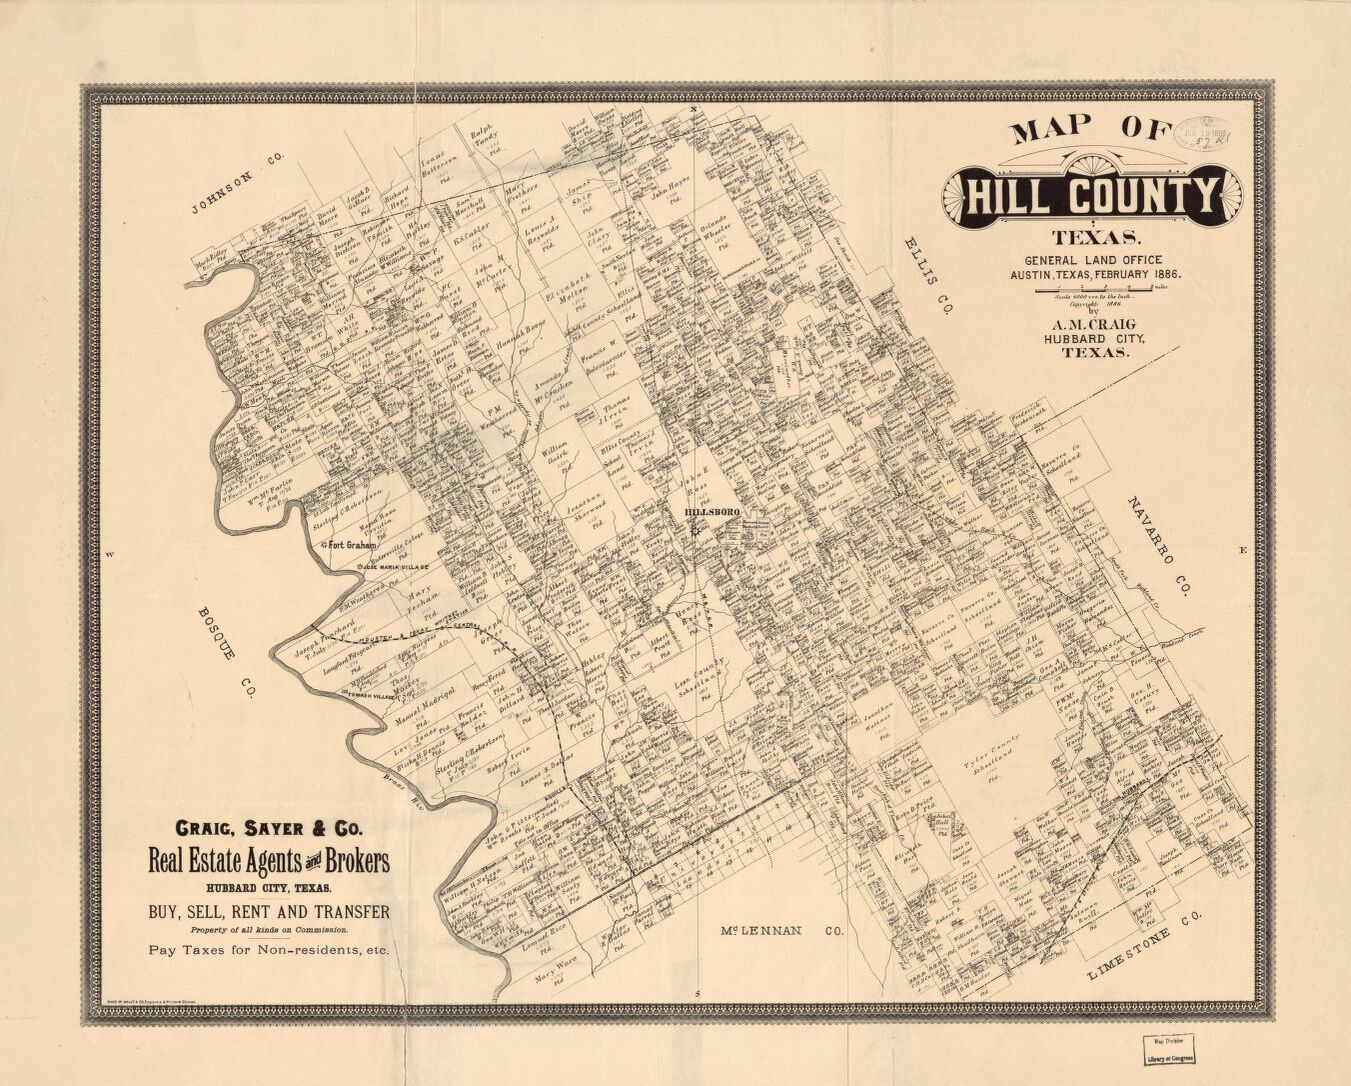 Map Of Hill County, Texas : General Land Office, Austin, Texas - Texas General Land Office Maps